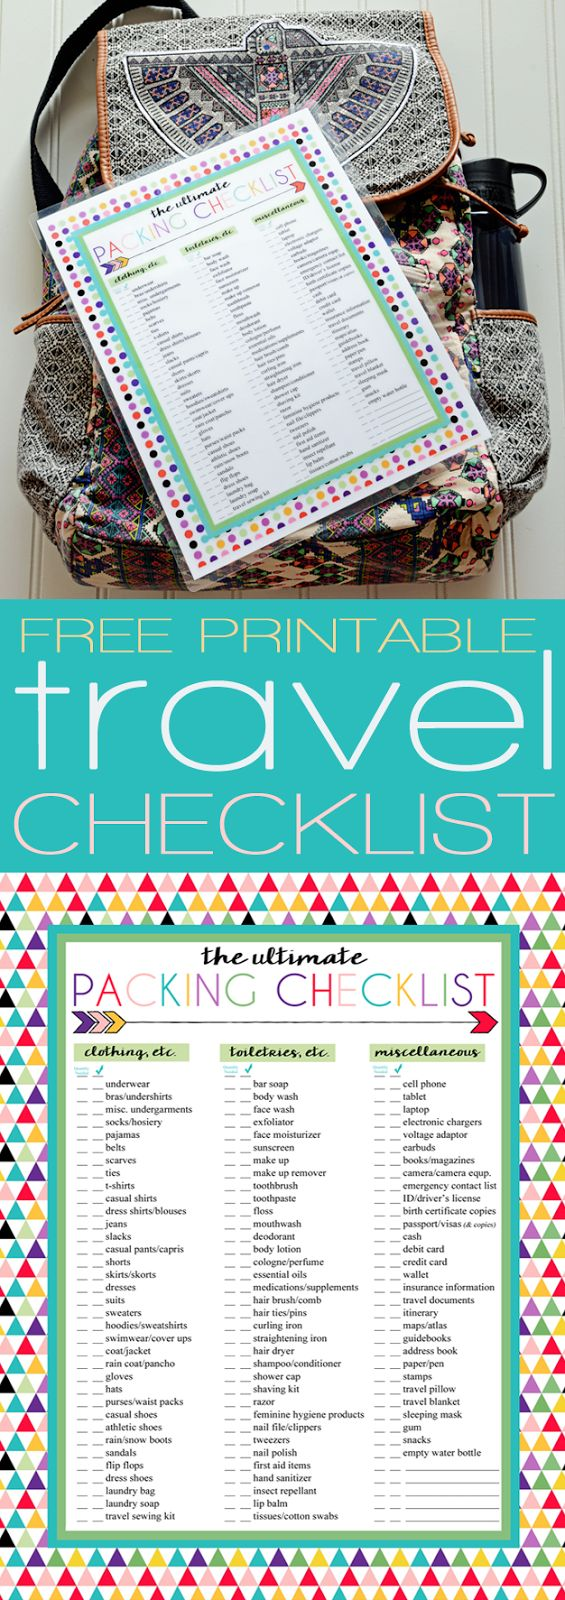 Free Printable Ultimate Packing Checklist | Perfect for travel packing | Three designs | Instant Downloads                                                                                                                                                                                 Más